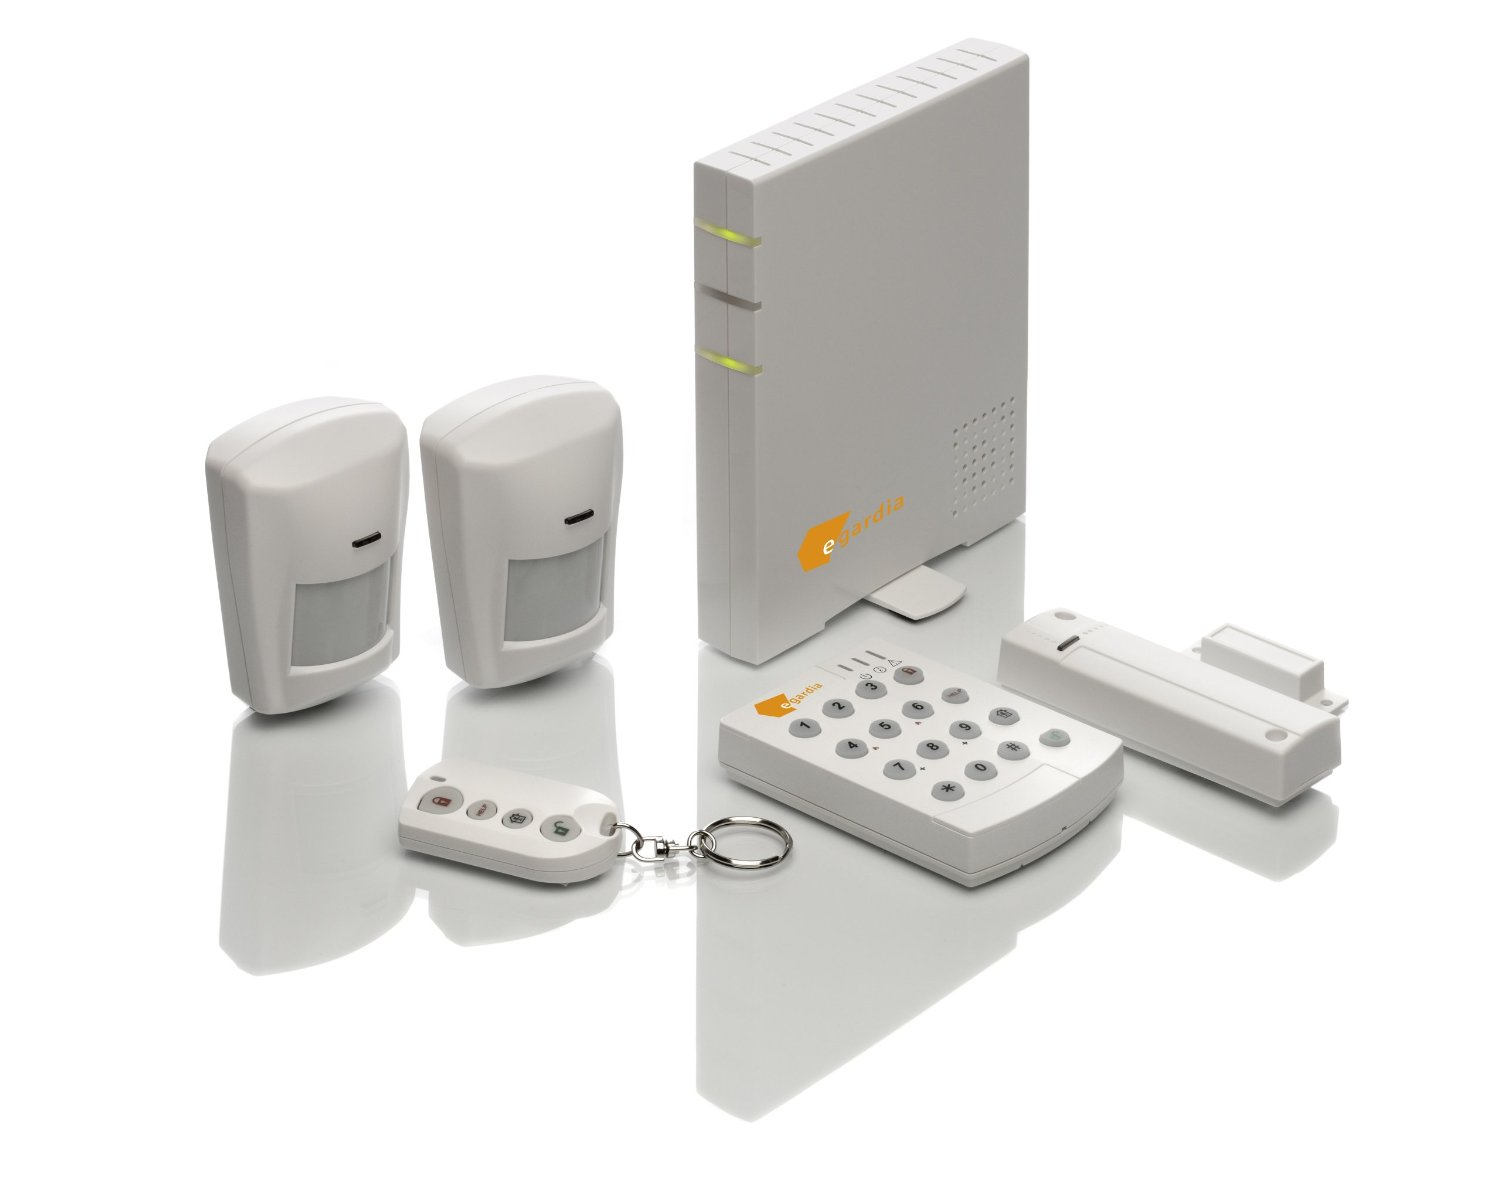 Review of the Egardia home alarm system